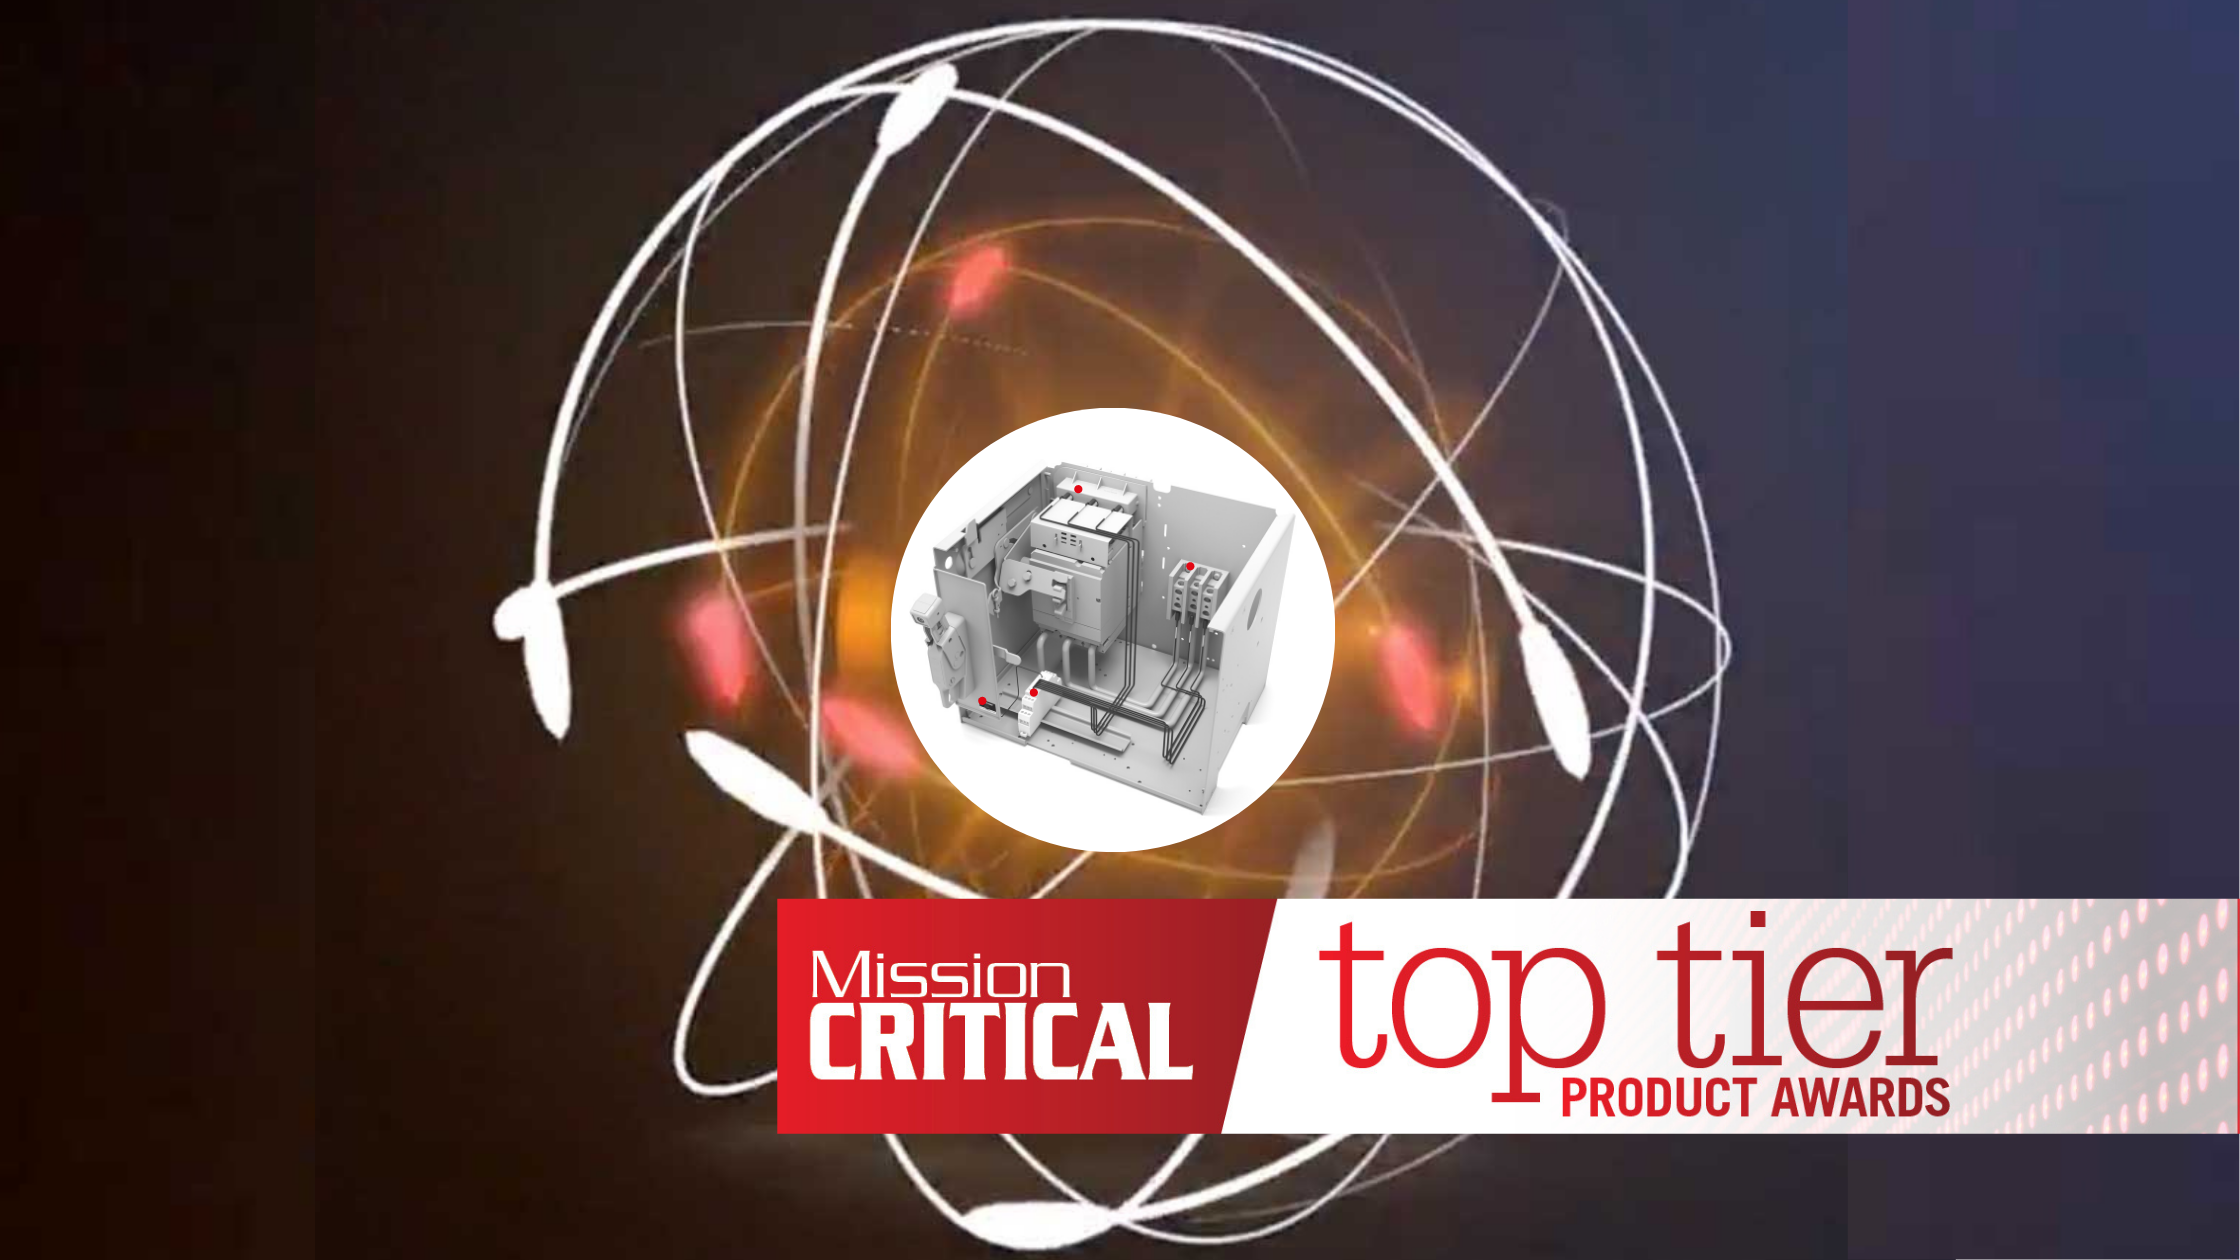 MCC Thermal Monitoring Wins Mission Critical Top Tier Product Award '21